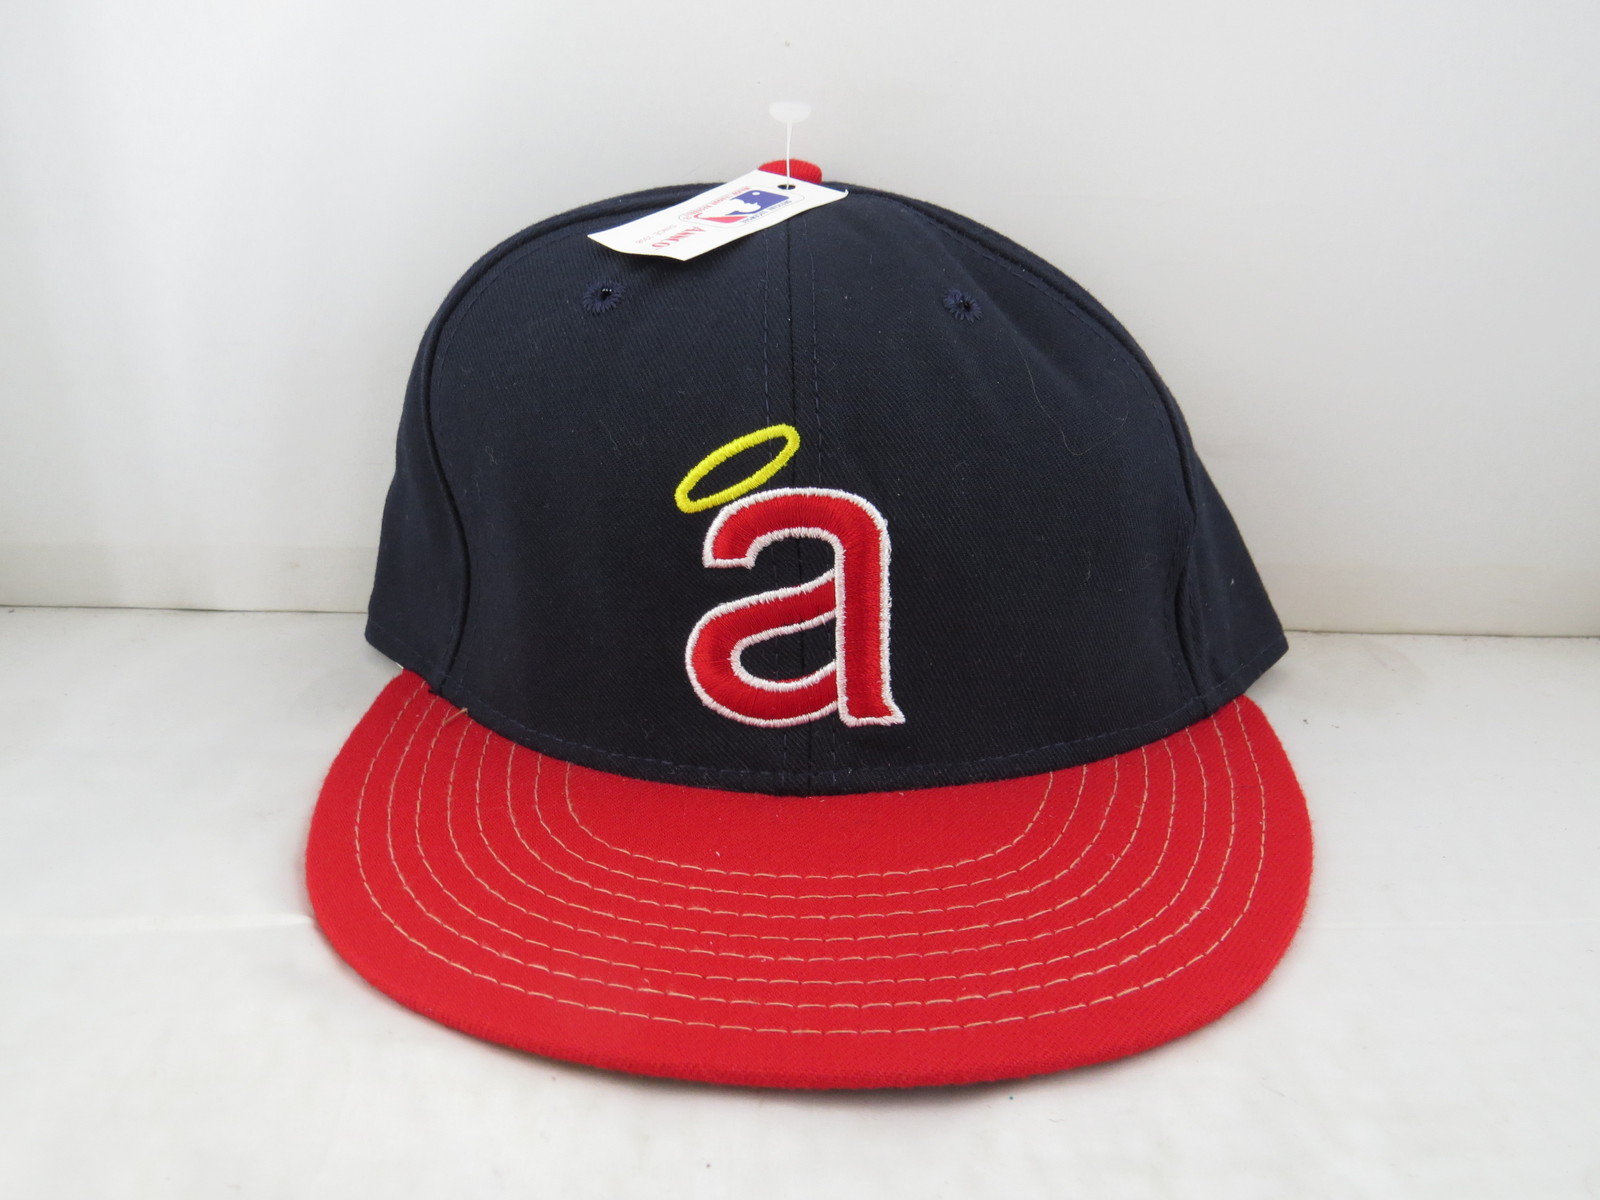 California Angels Hat (VTG) - 1980s Pro Model by Annco - Fitted 7 3/8 (NWT)  - $85.00